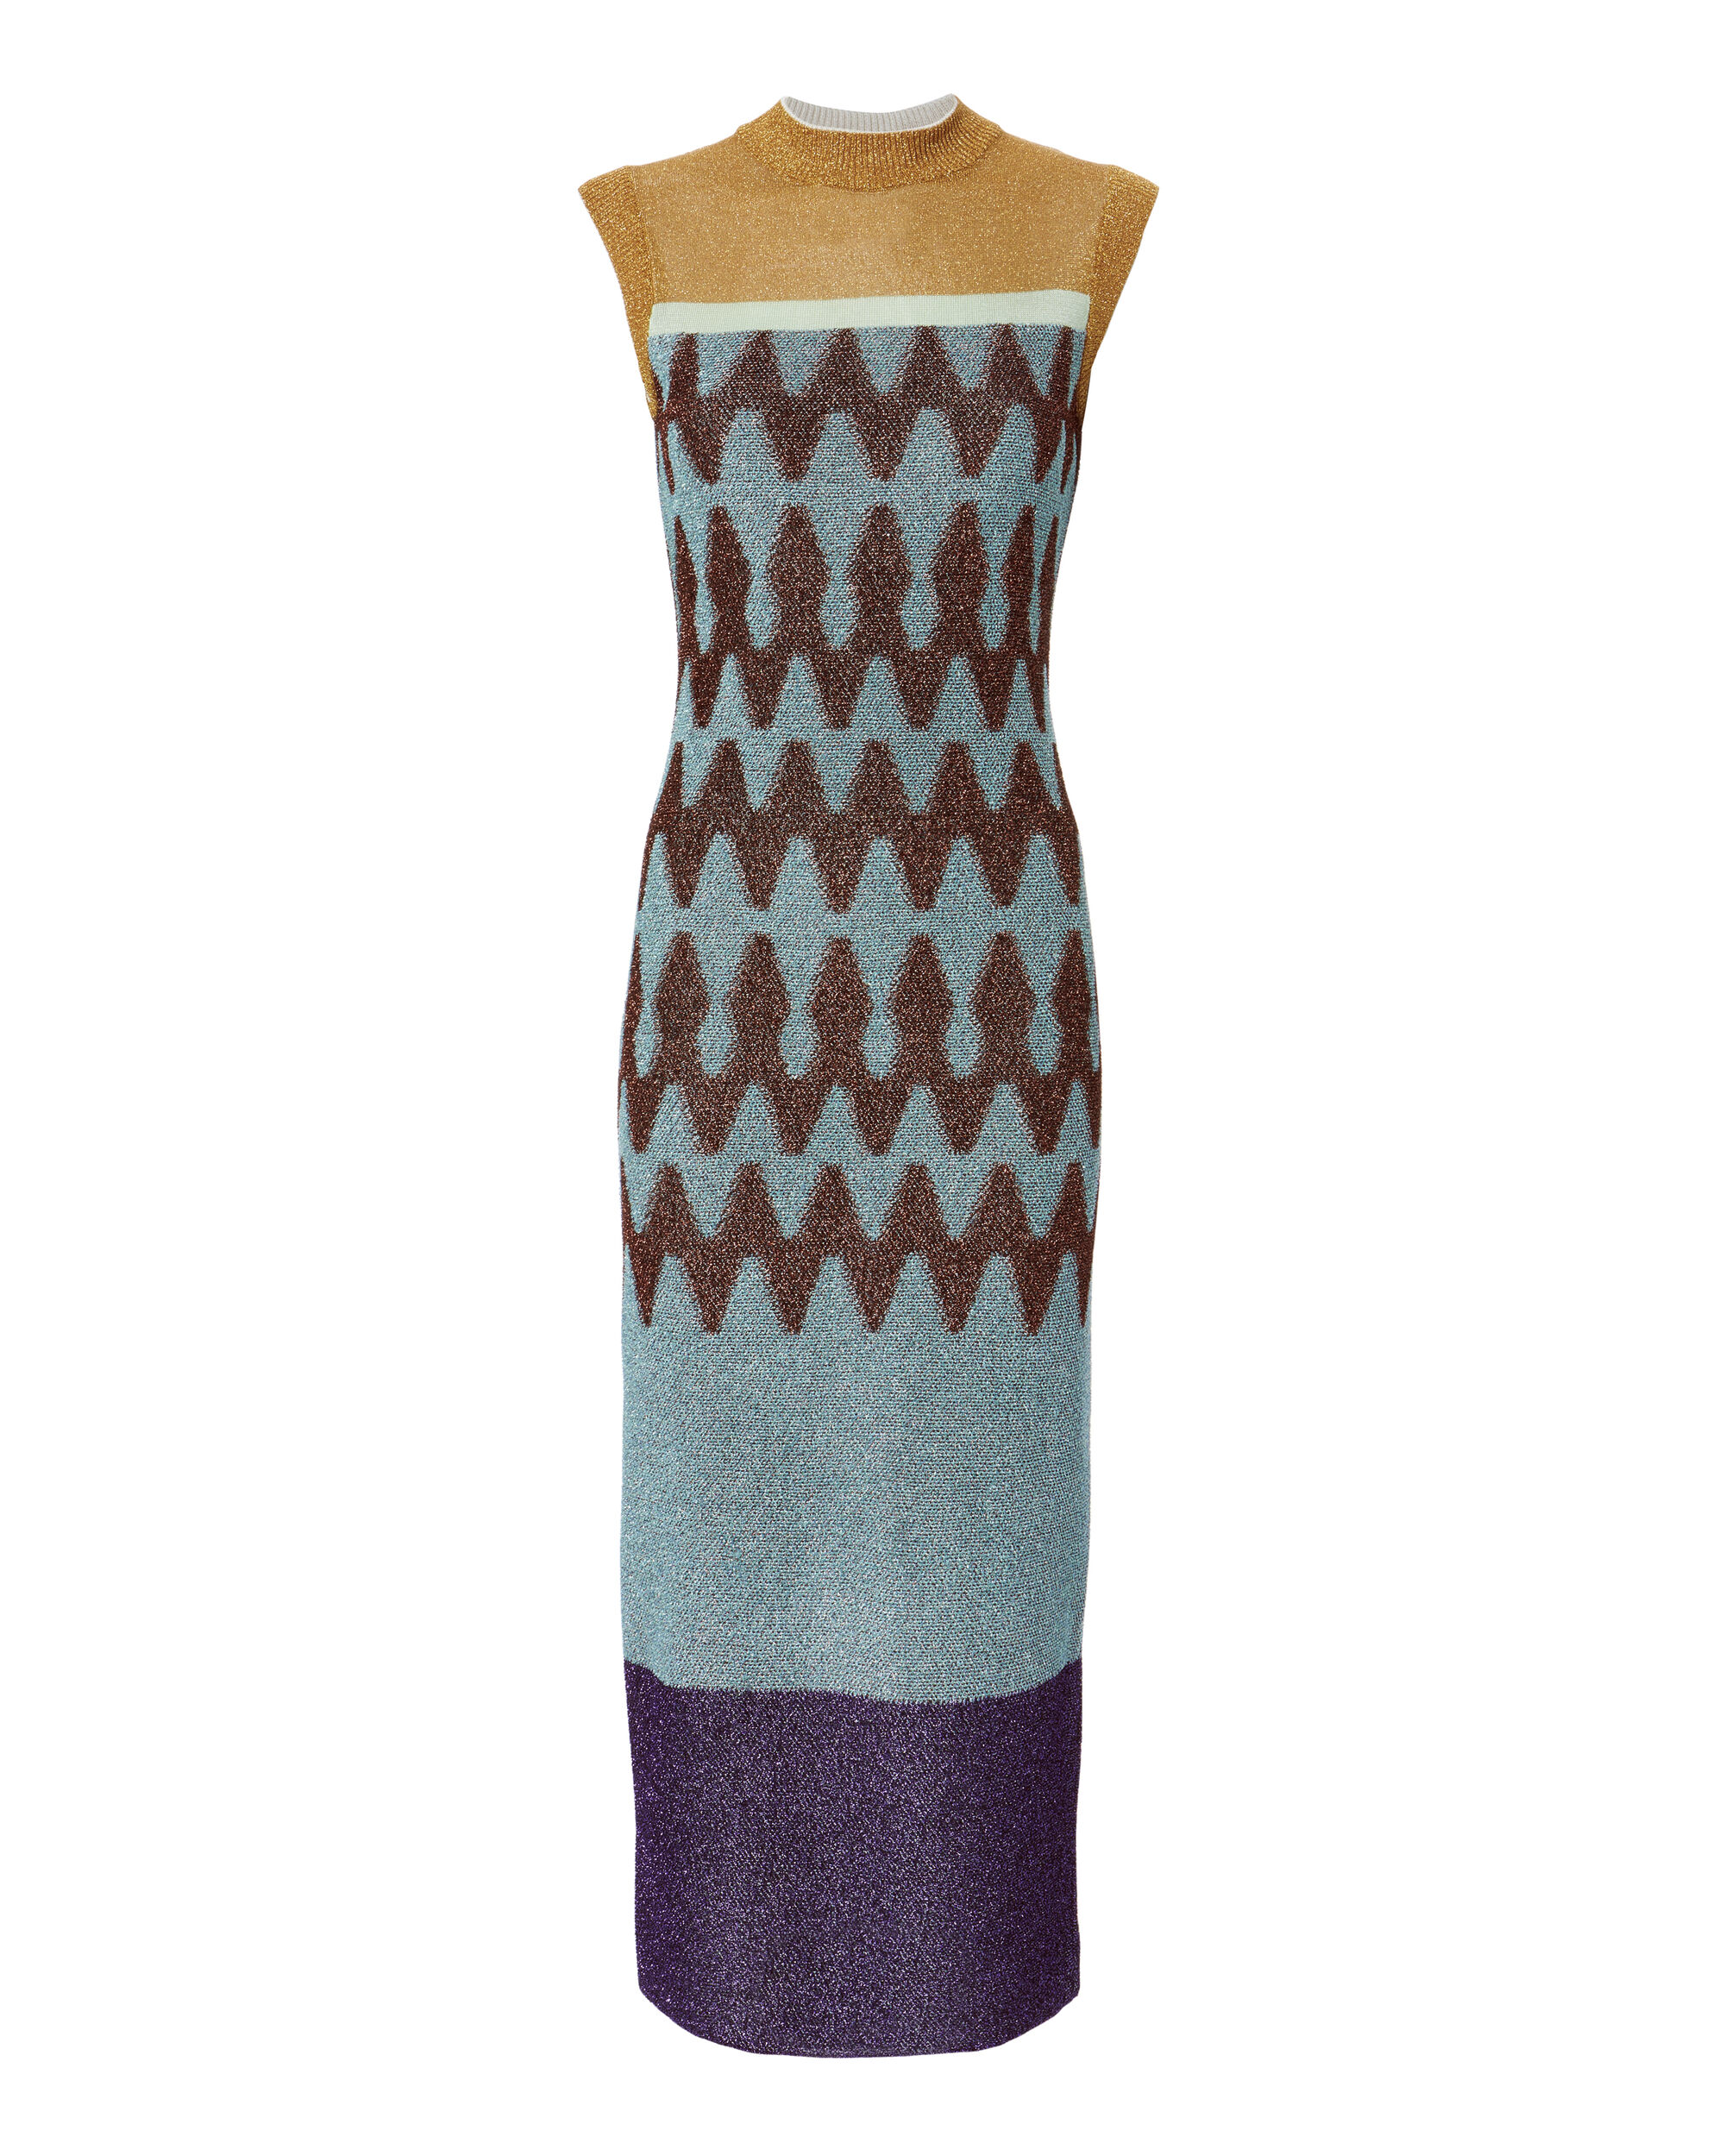 Jacquard Lamé Knit Midi Dress, MULT-MED 2, hi-res